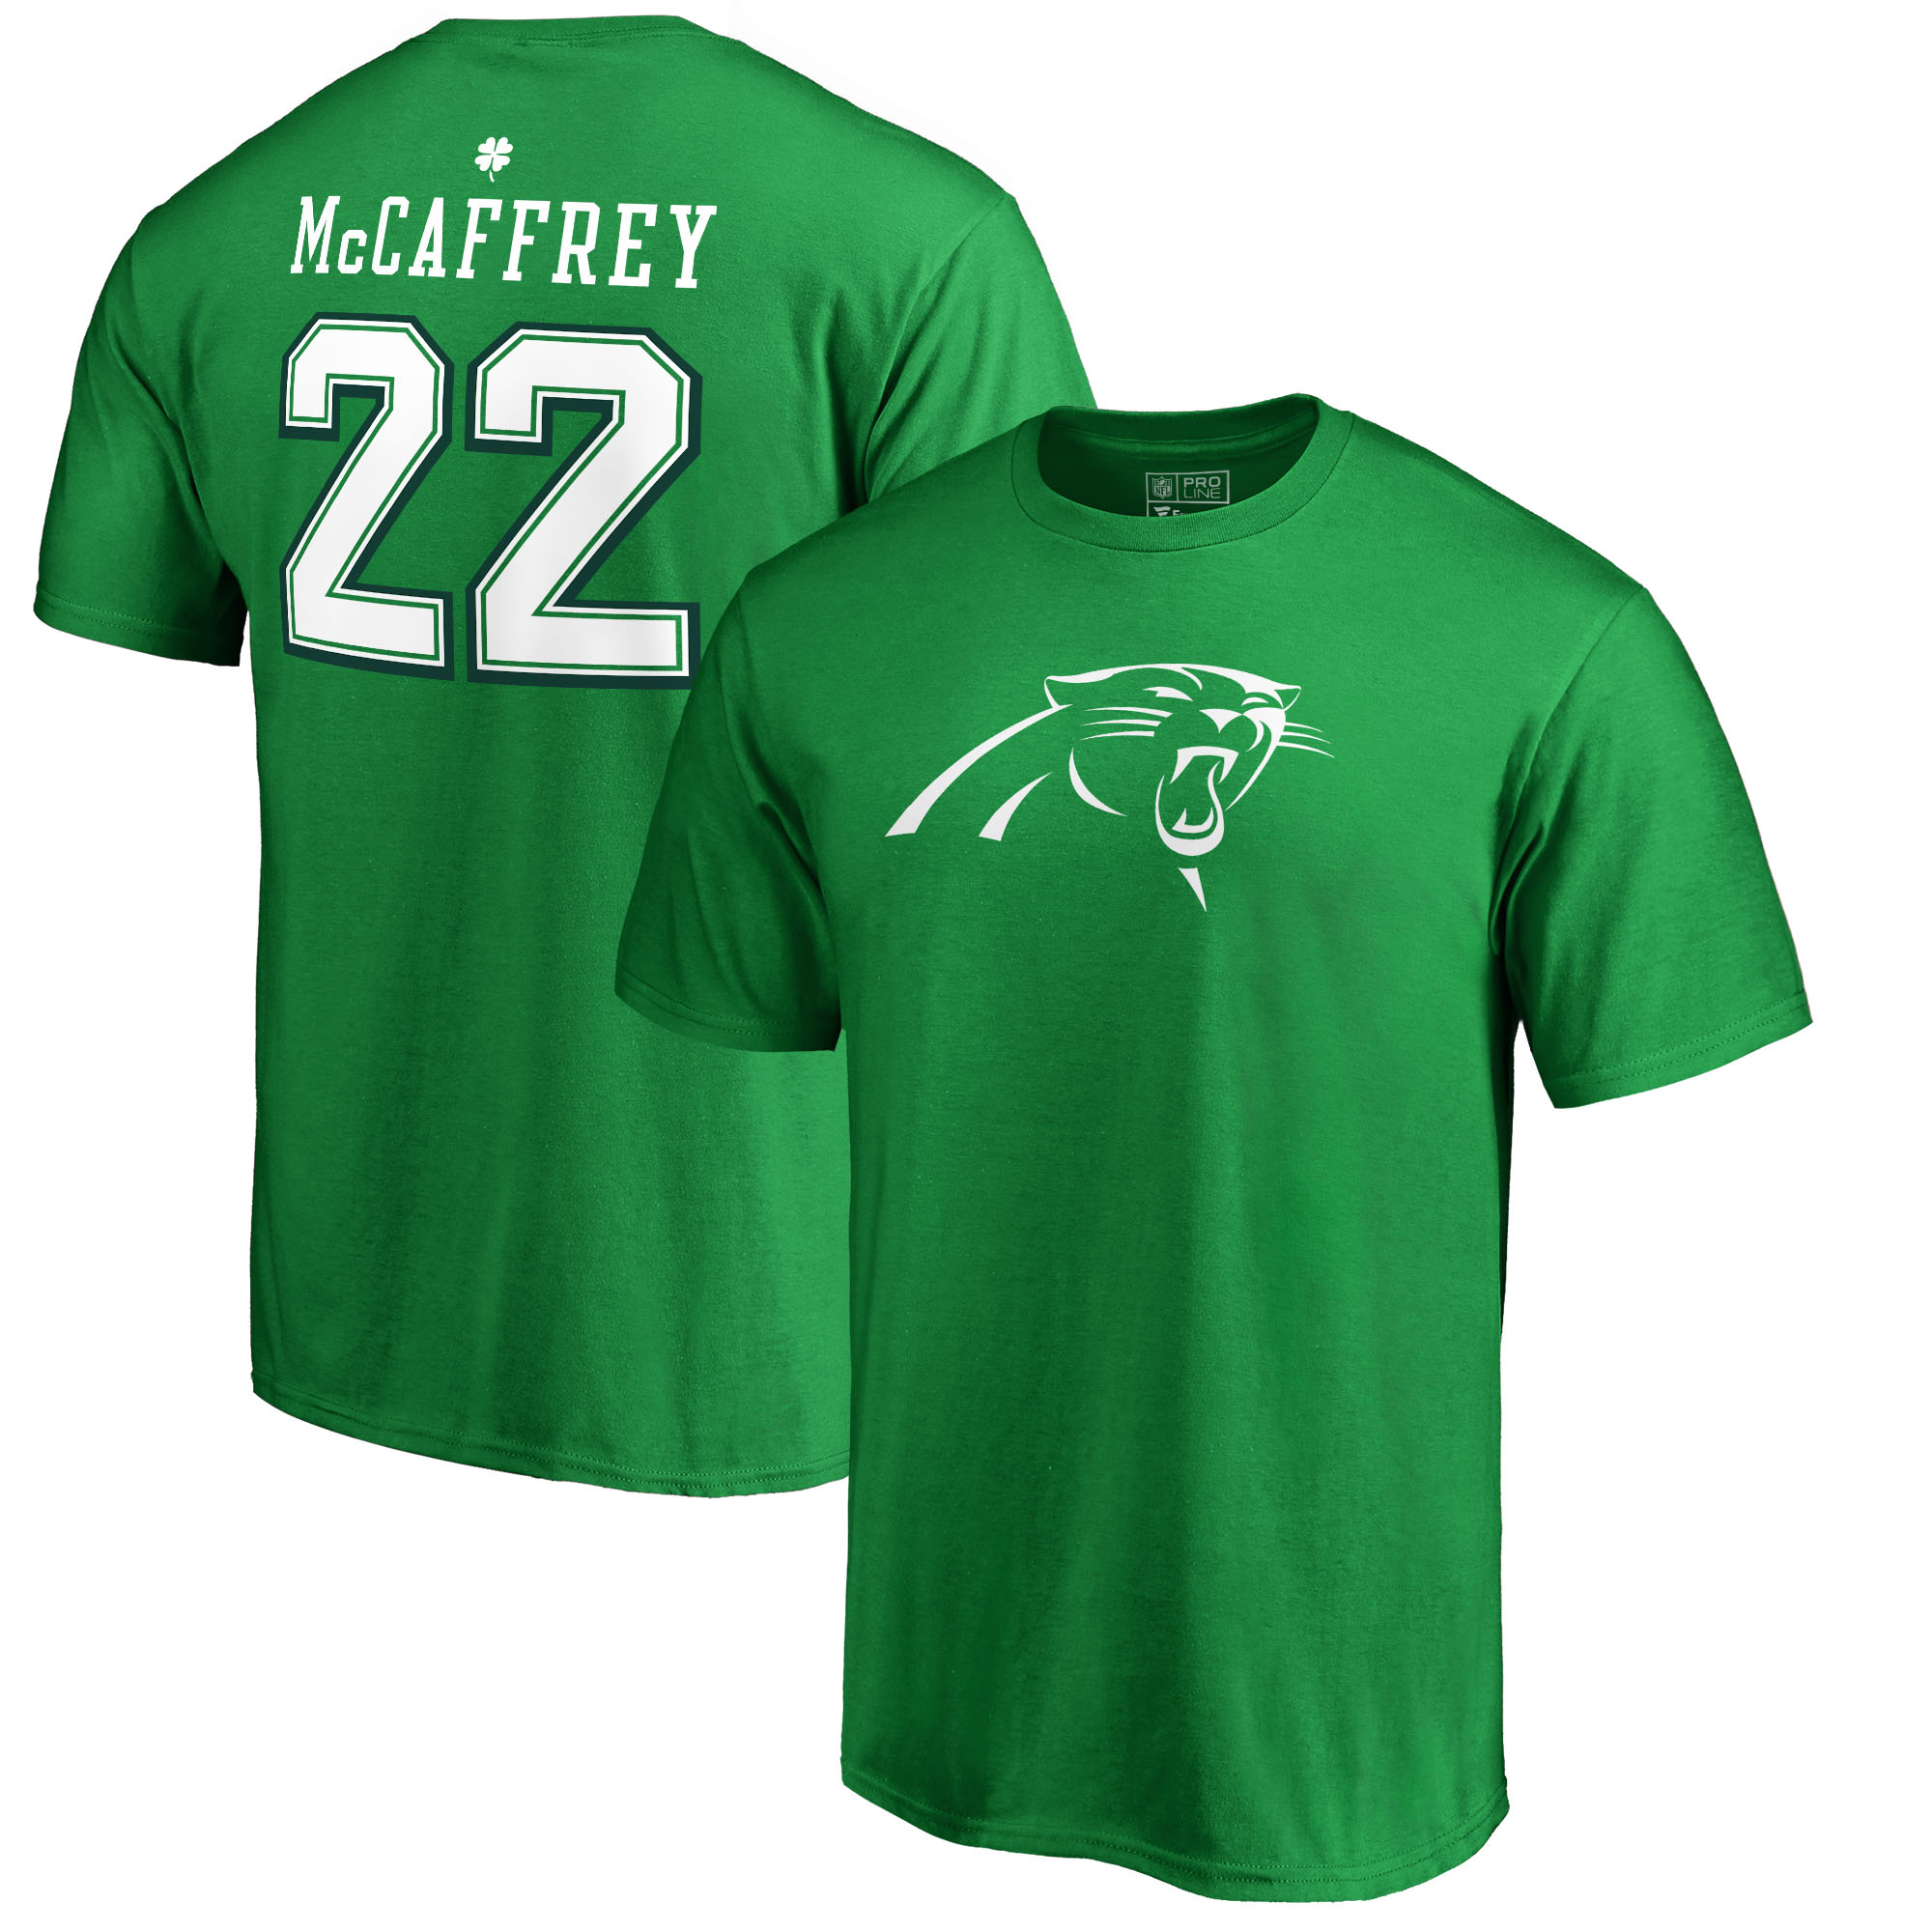 Christian McCaffrey Carolina Panthers NFL Pro Line by Fanatics Branded St. Patrick's Day Icon Name & Number T-Shirt - Kelly Green